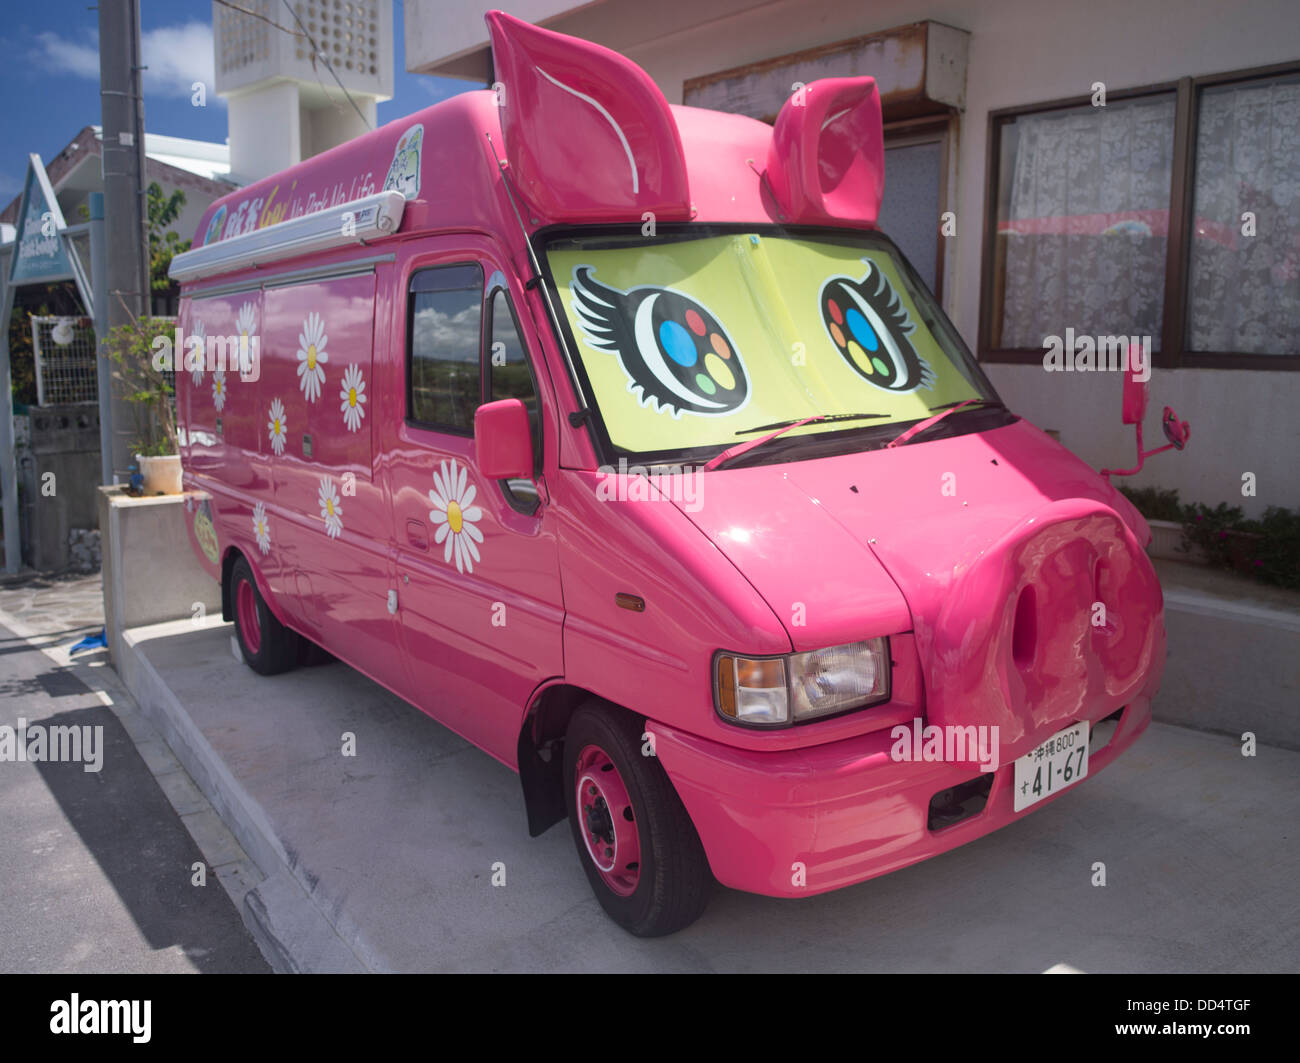 Pig Van in Okinawa, Japan. Pork products are part of the Okinawan diet, with both local pork and imported products - Stock Image